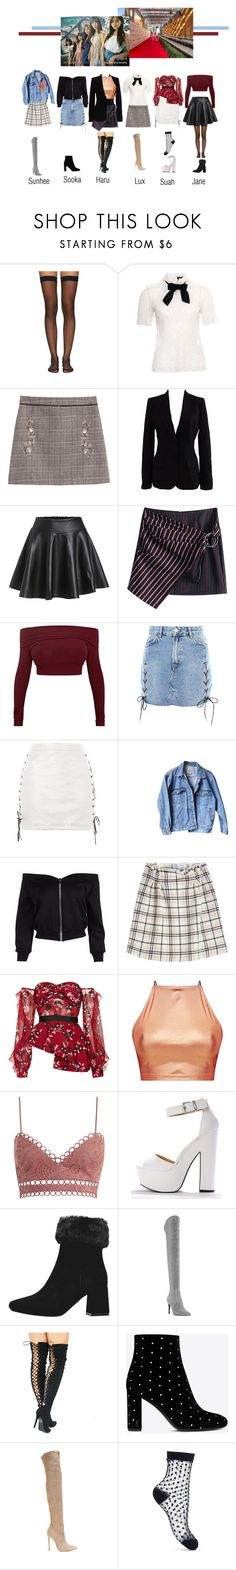 """""""NANA arrived at Bang Charity"""" by bsaentertainment ❤ liked on Polyvore featuring Wolford, The Kooples, Dolce&Gabbana, Topshop, Levi's, Carven, self-portrait, Zimmermann, Dune and Yves Saint Laurent"""